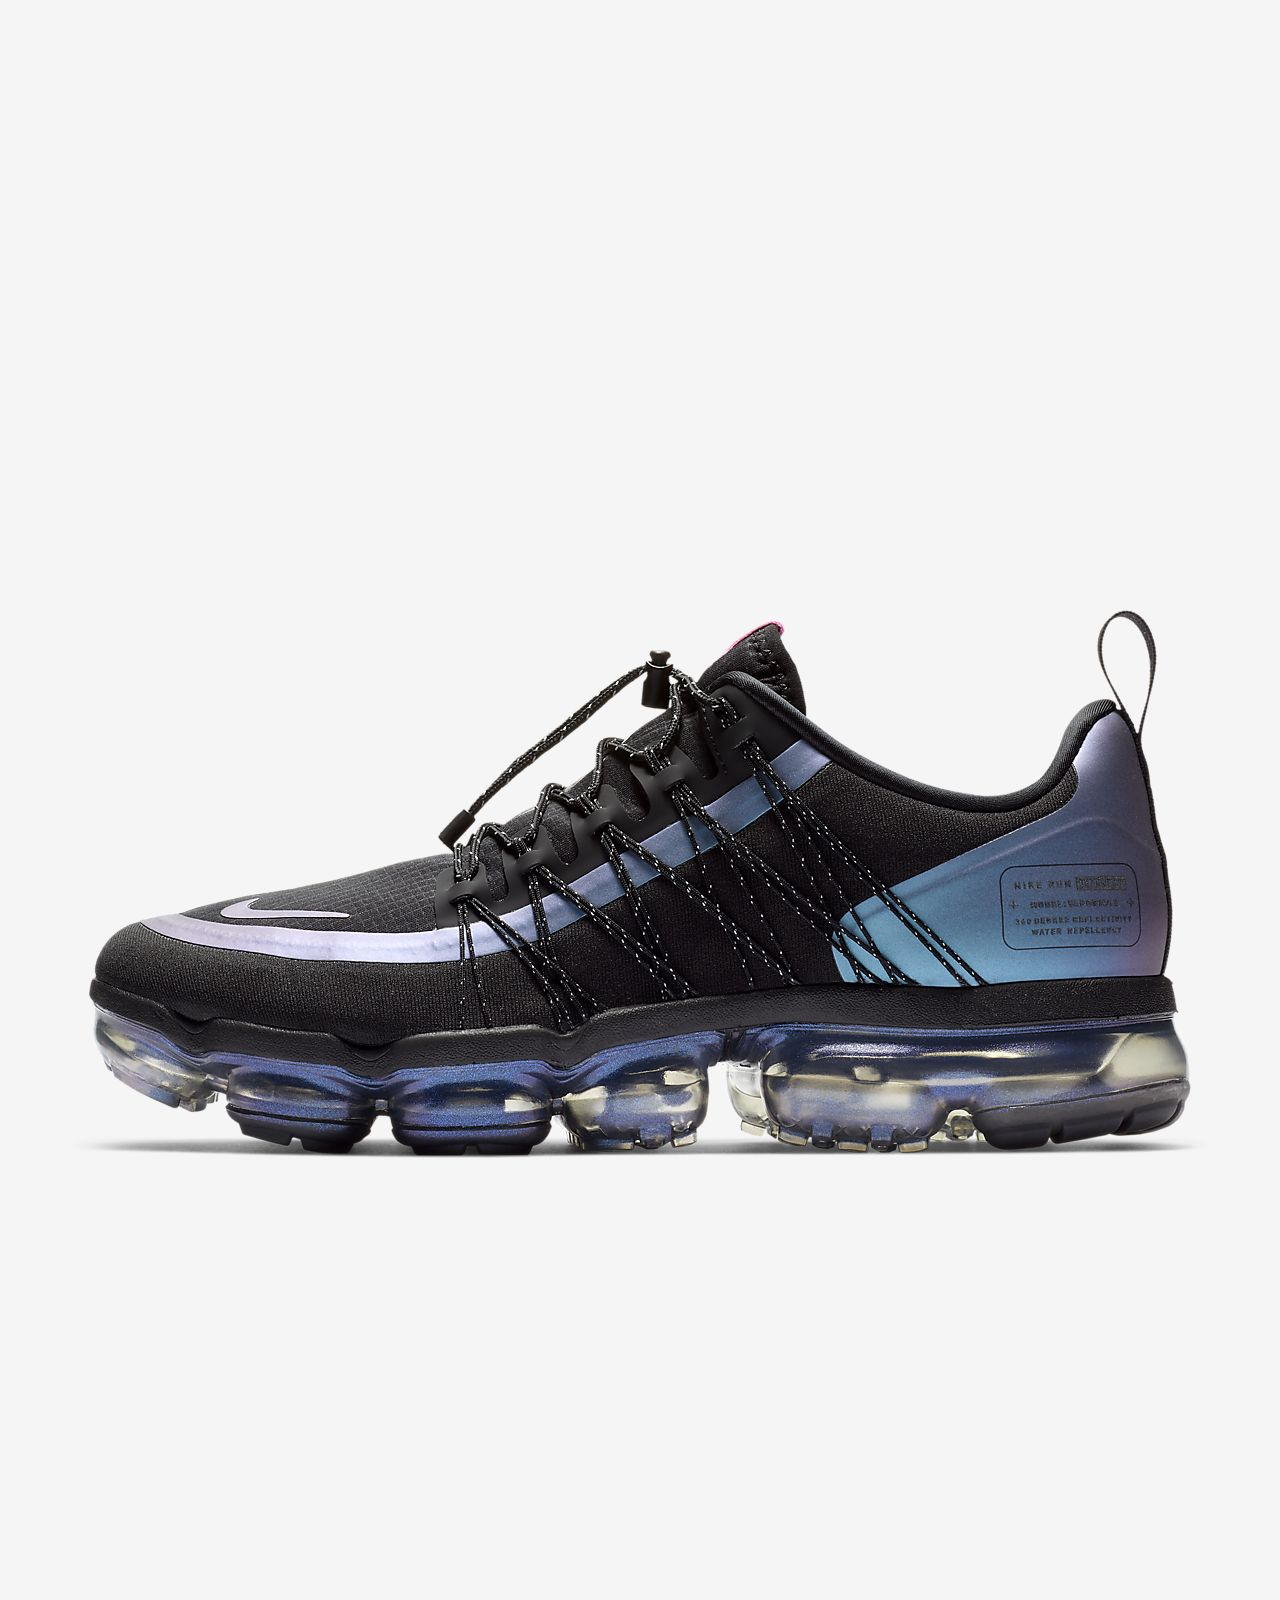 detailed look d4d0d 63784 Low Resolution Nike Air VaporMax Utility herresko Nike Air VaporMax Utility  herresko